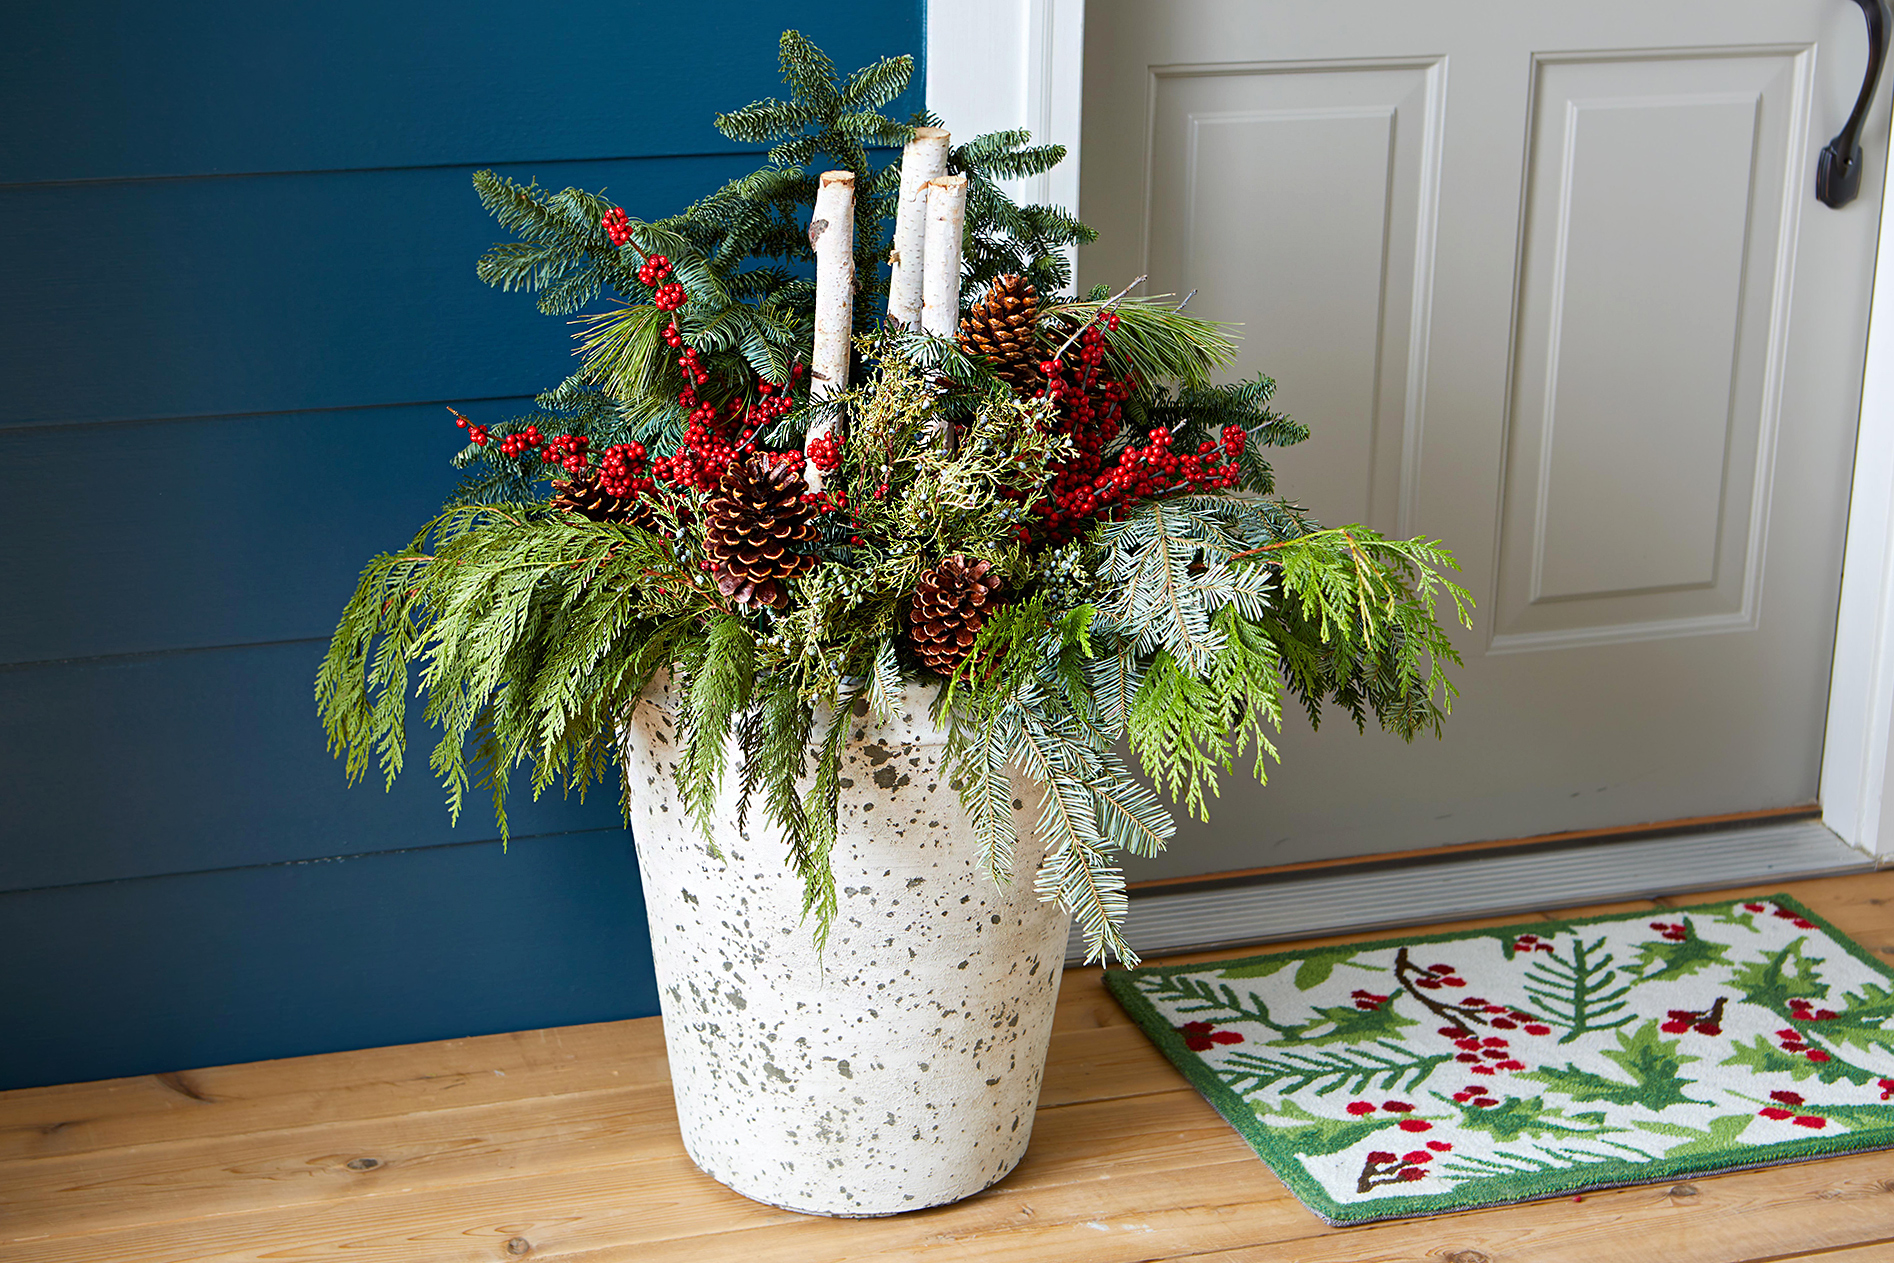 ceramic planter on porch with holiday greenery